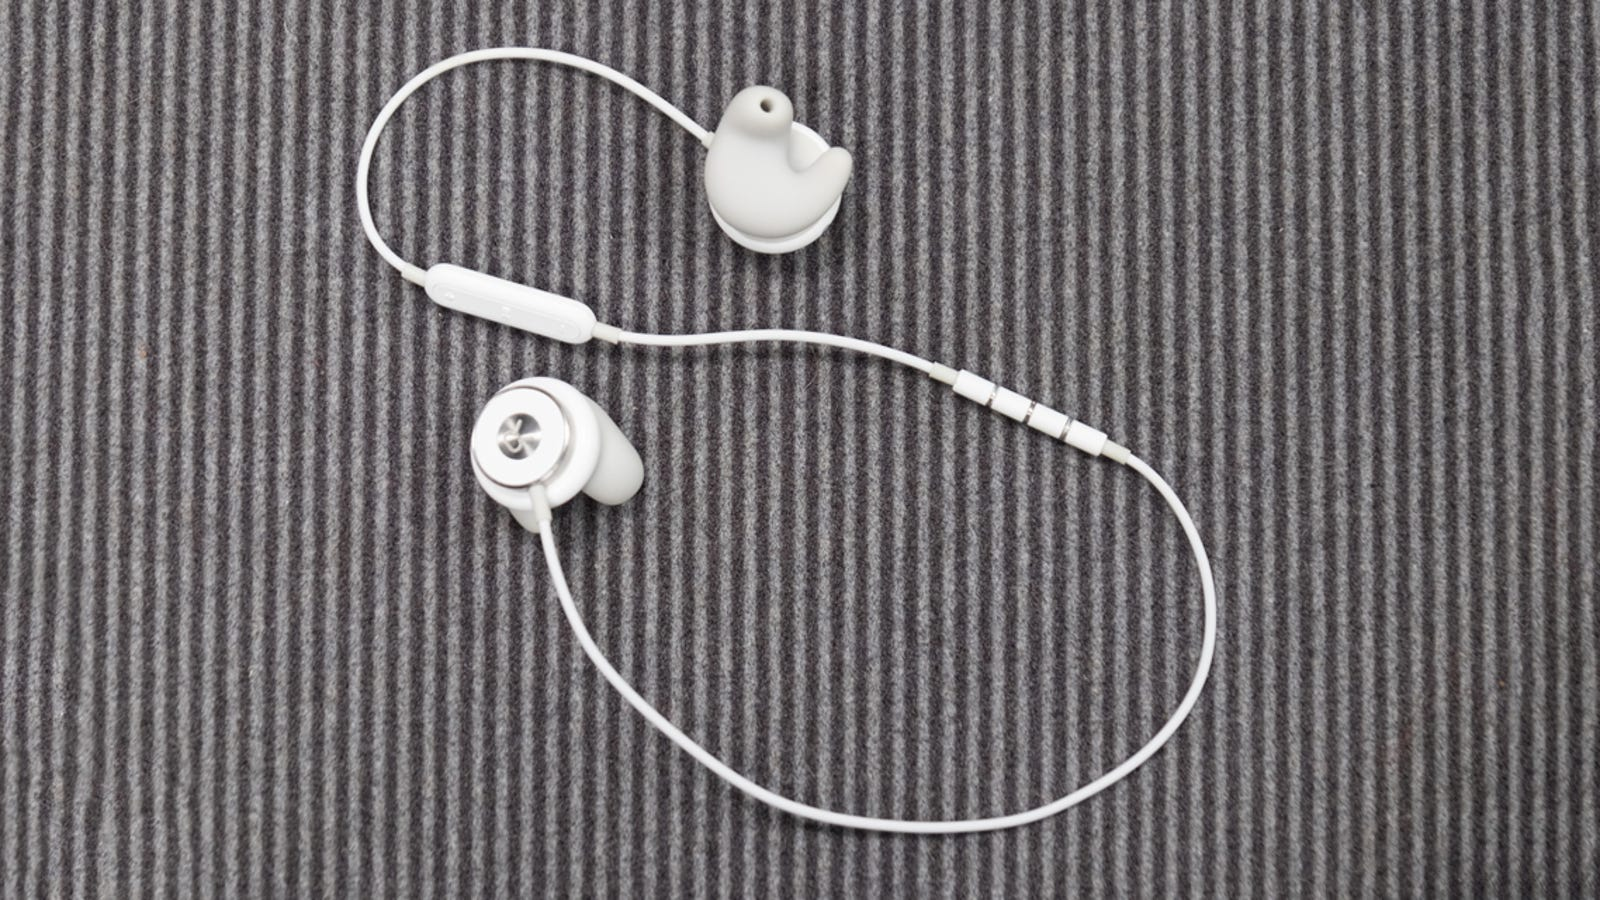 original iphone lightning headphones